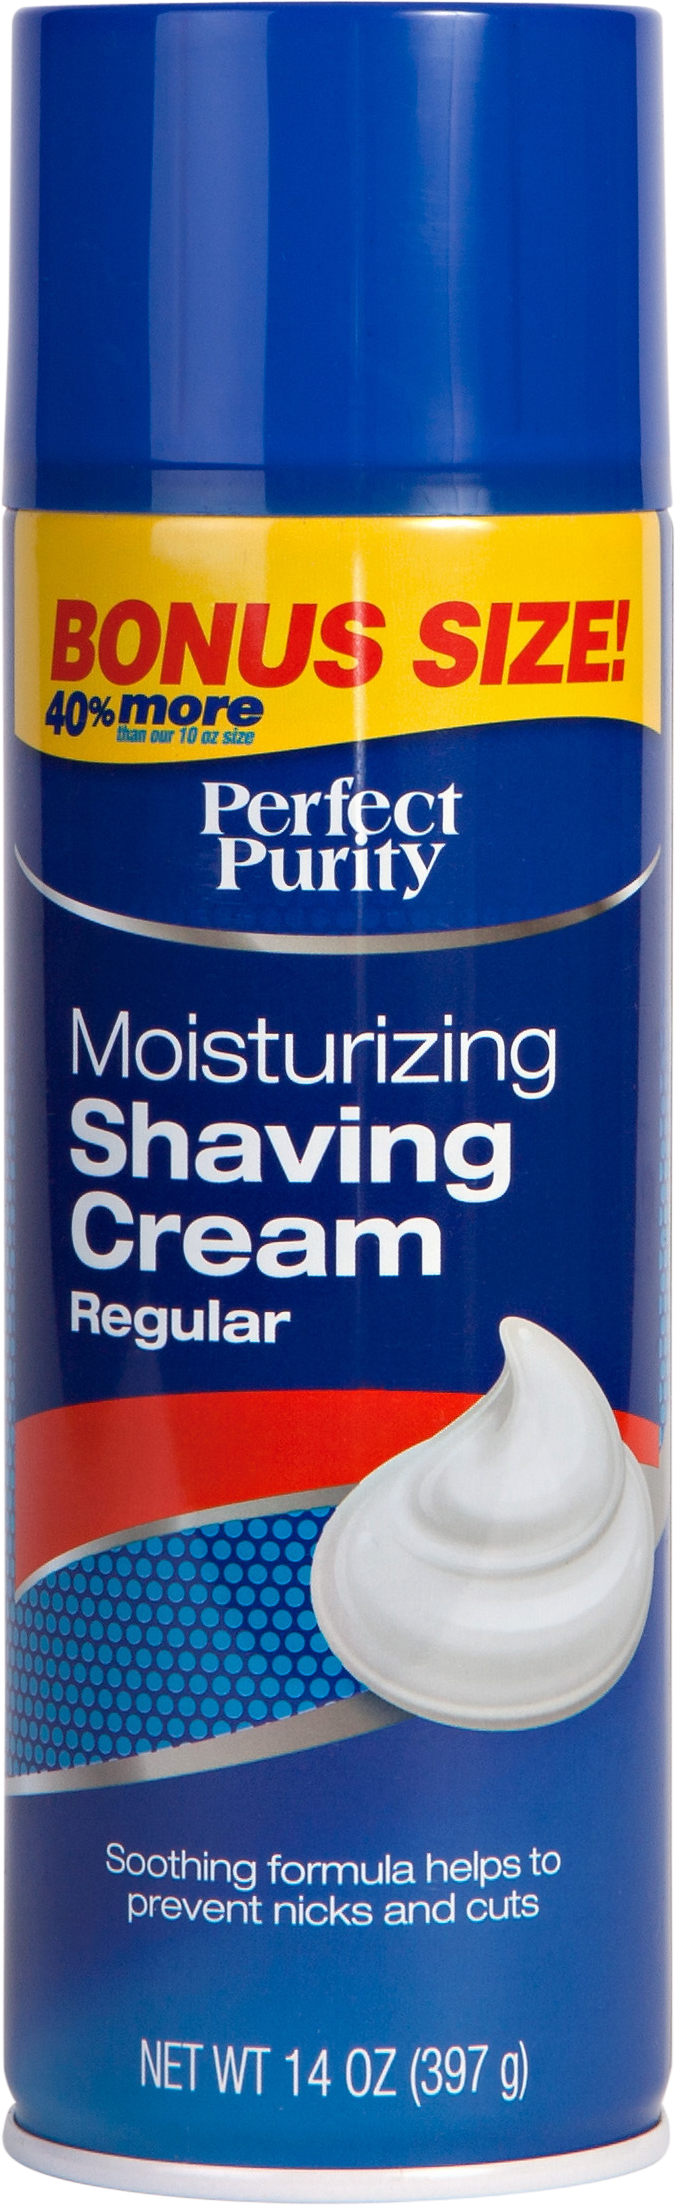 Davion 14oz Perfect Purity Moisturizing Shaving Cream 44114